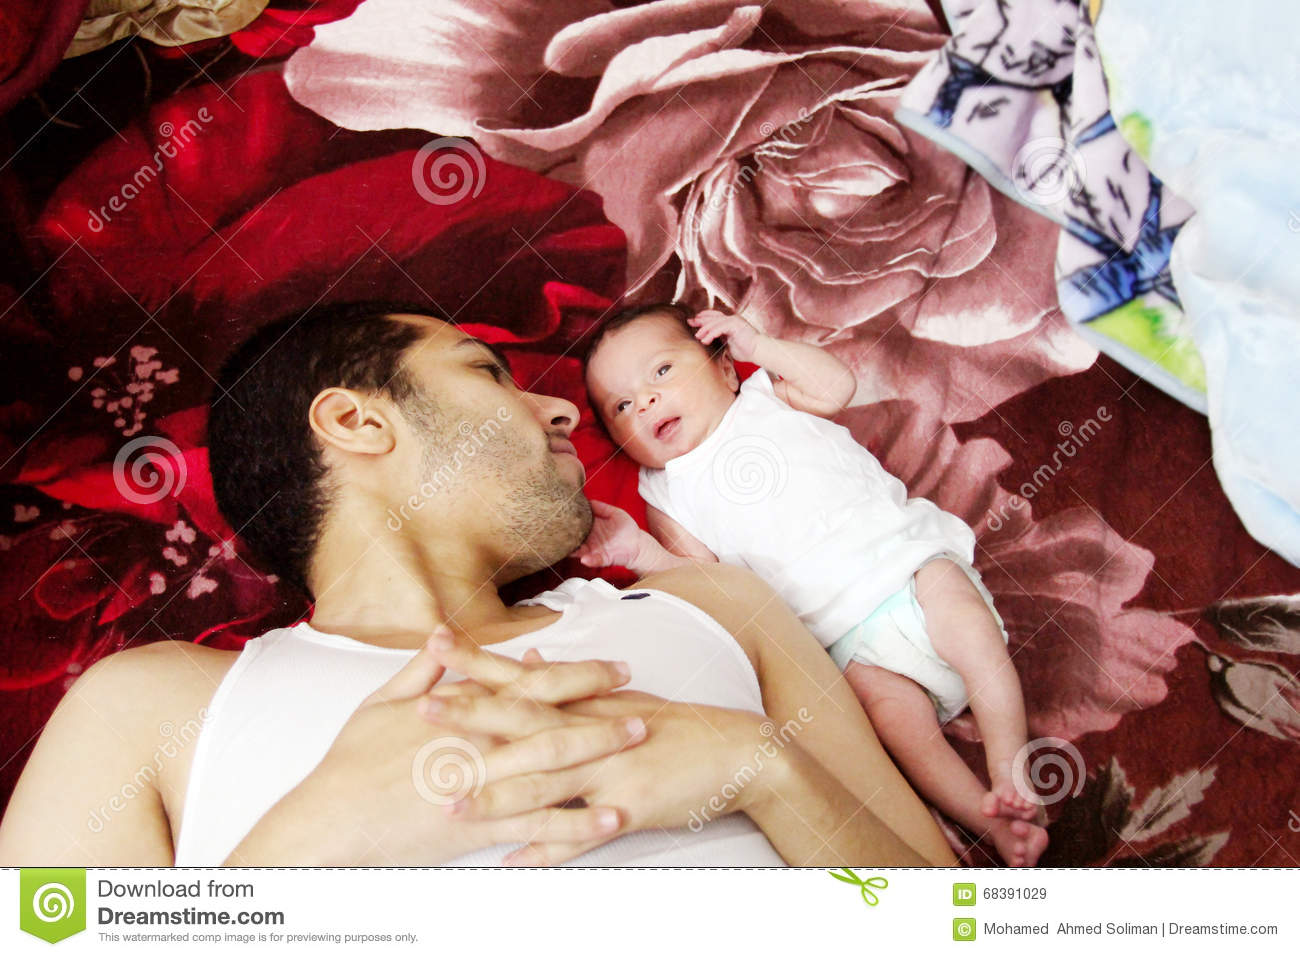 Arab egyptian man with his newborn baby girl